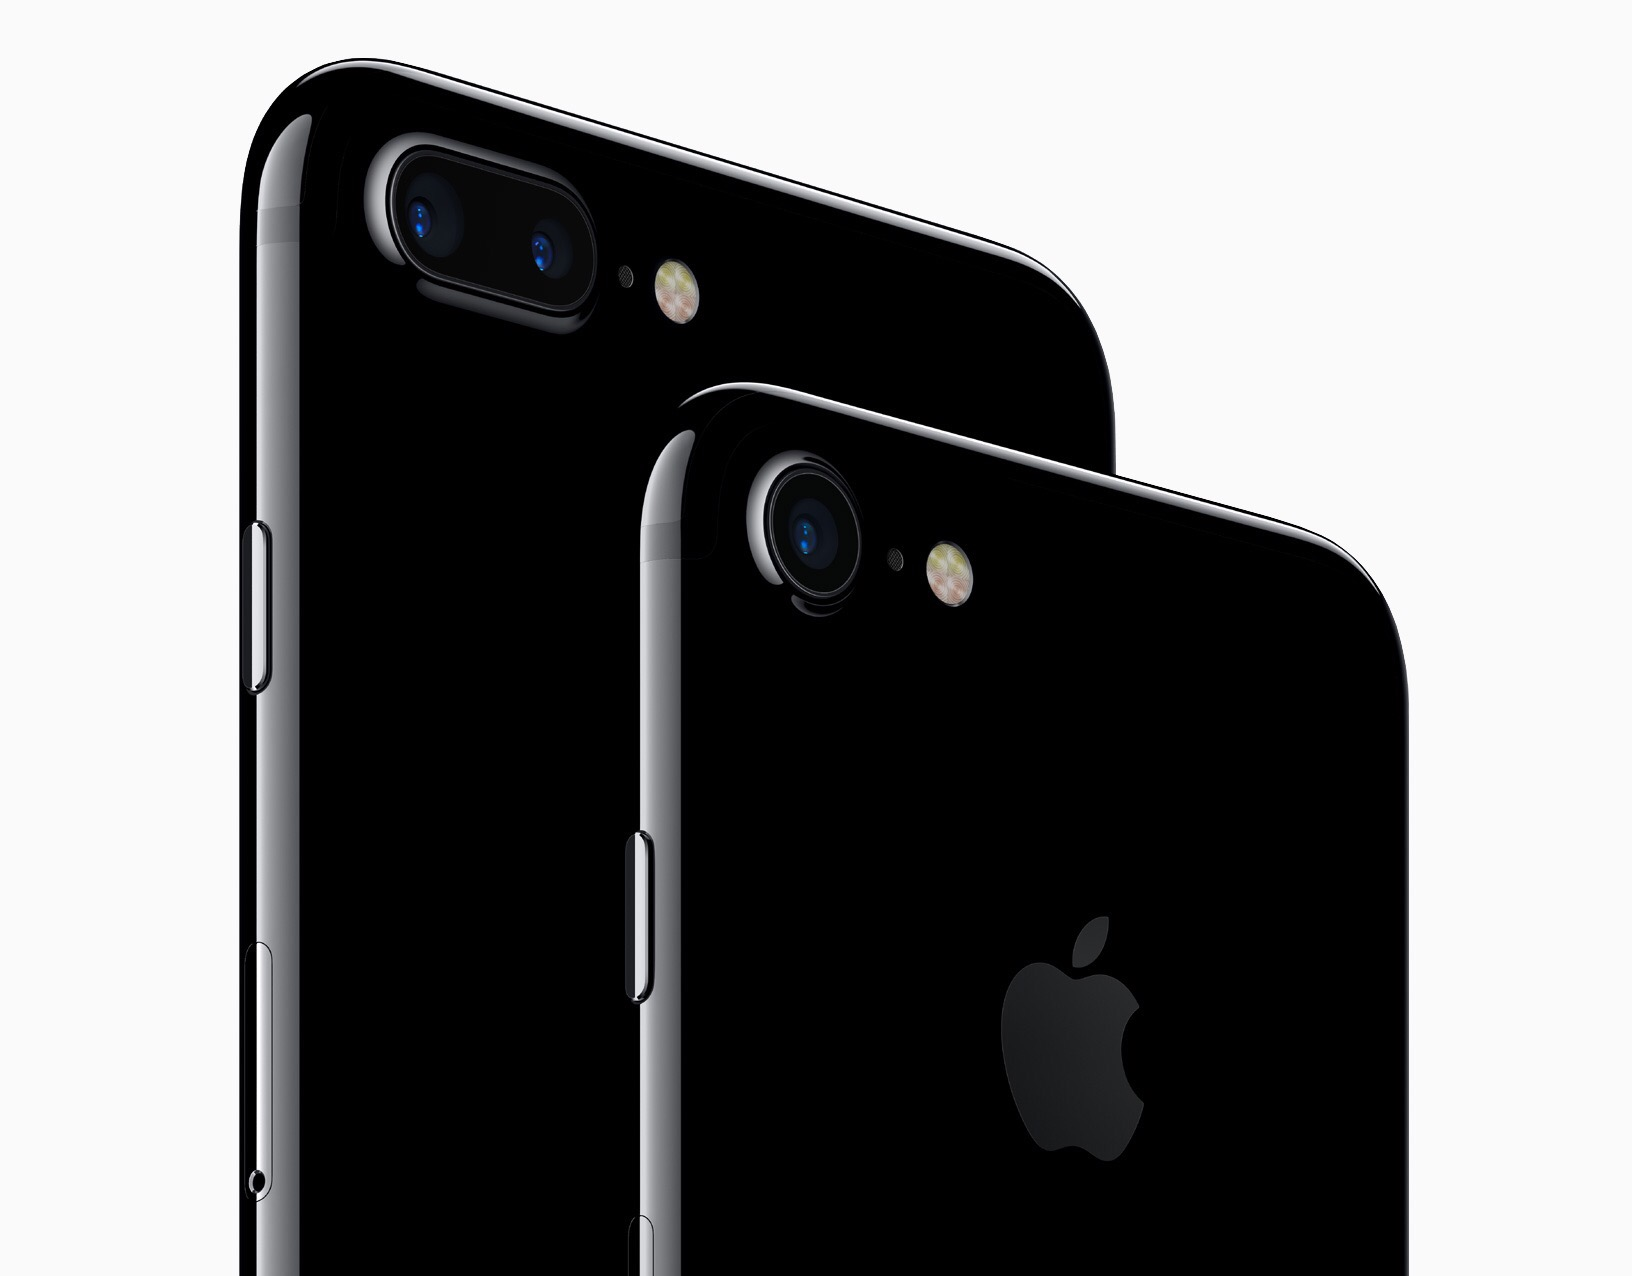 Jet Black And The Unicorn 256 Gb Iphone Yet Another Tech Review Apple 7 First Foremost Made Distinction This Year That Plus Is Their Best Smartphone Unlike Last There A Real Reason As To Why